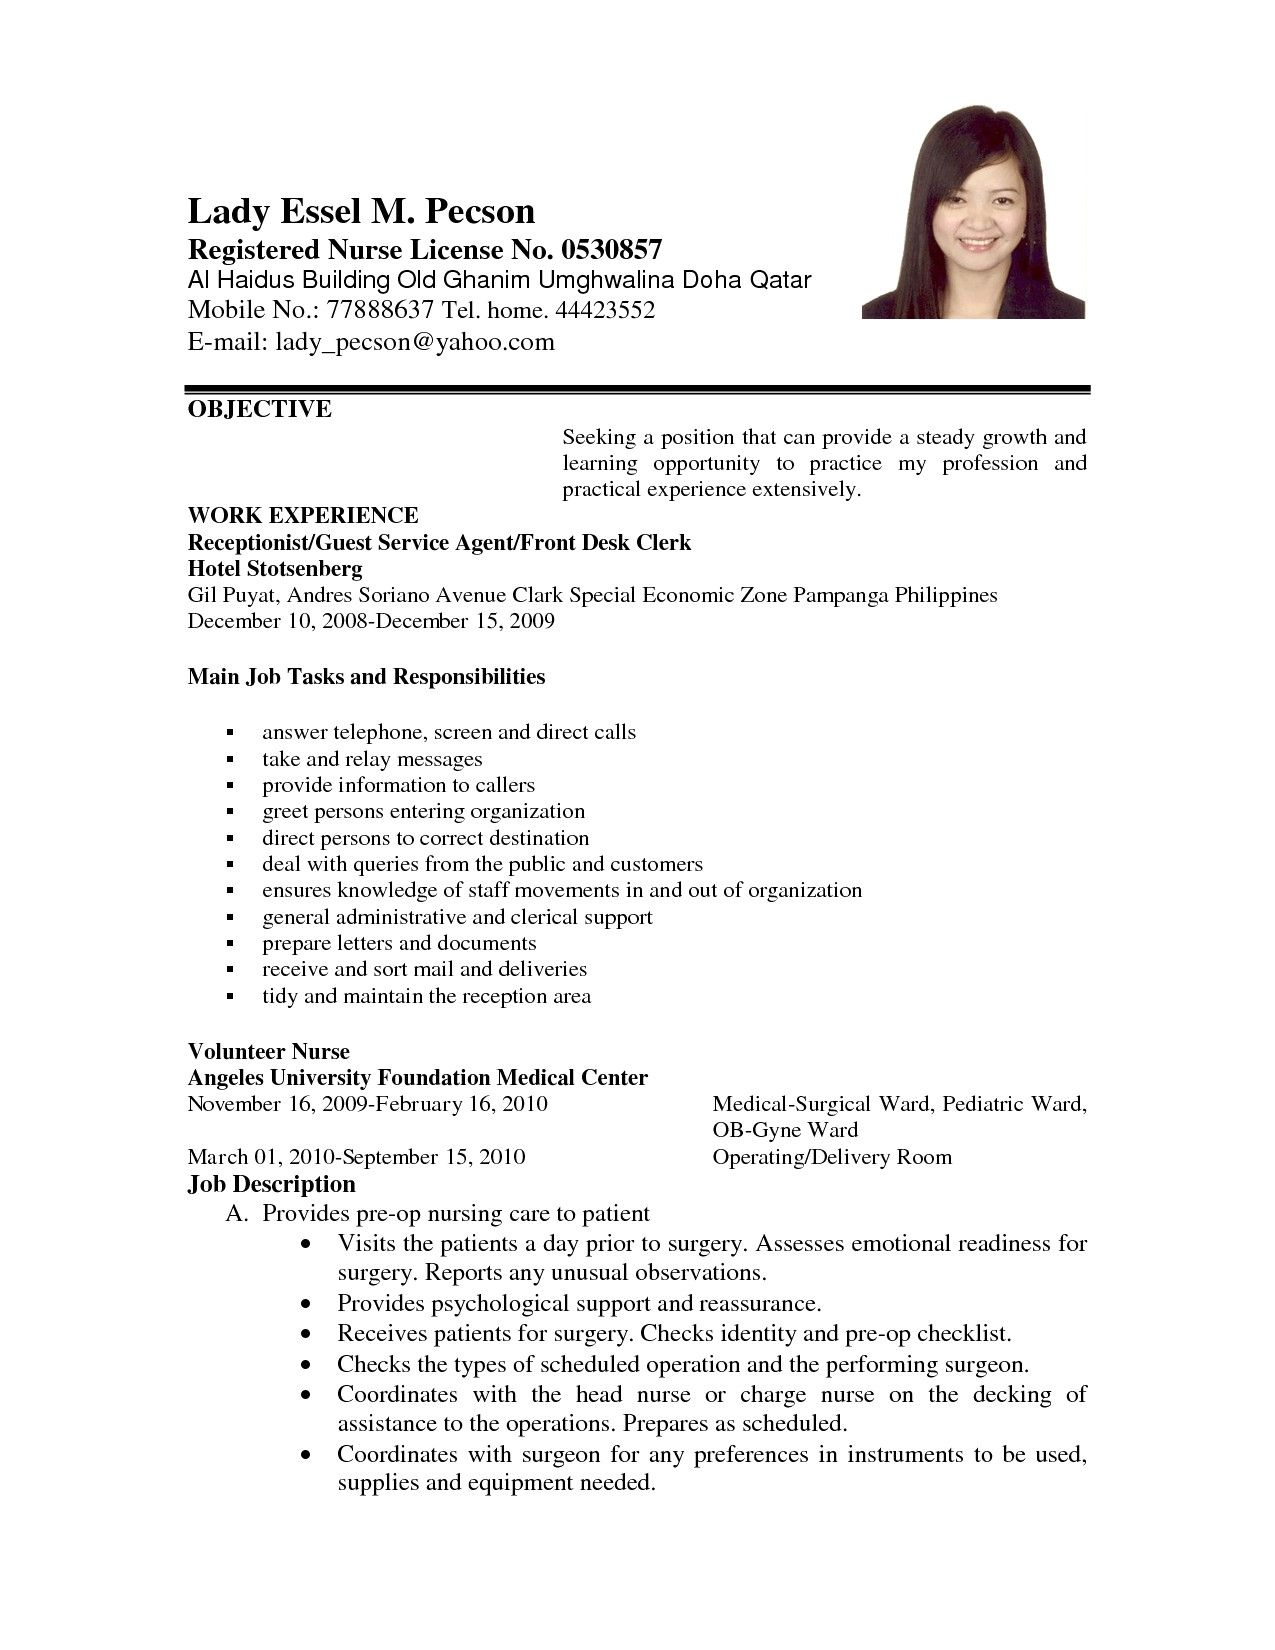 career objective resume examples awesome example applying for job of objectives cover Resume Sample Objective For Resume For Any Position